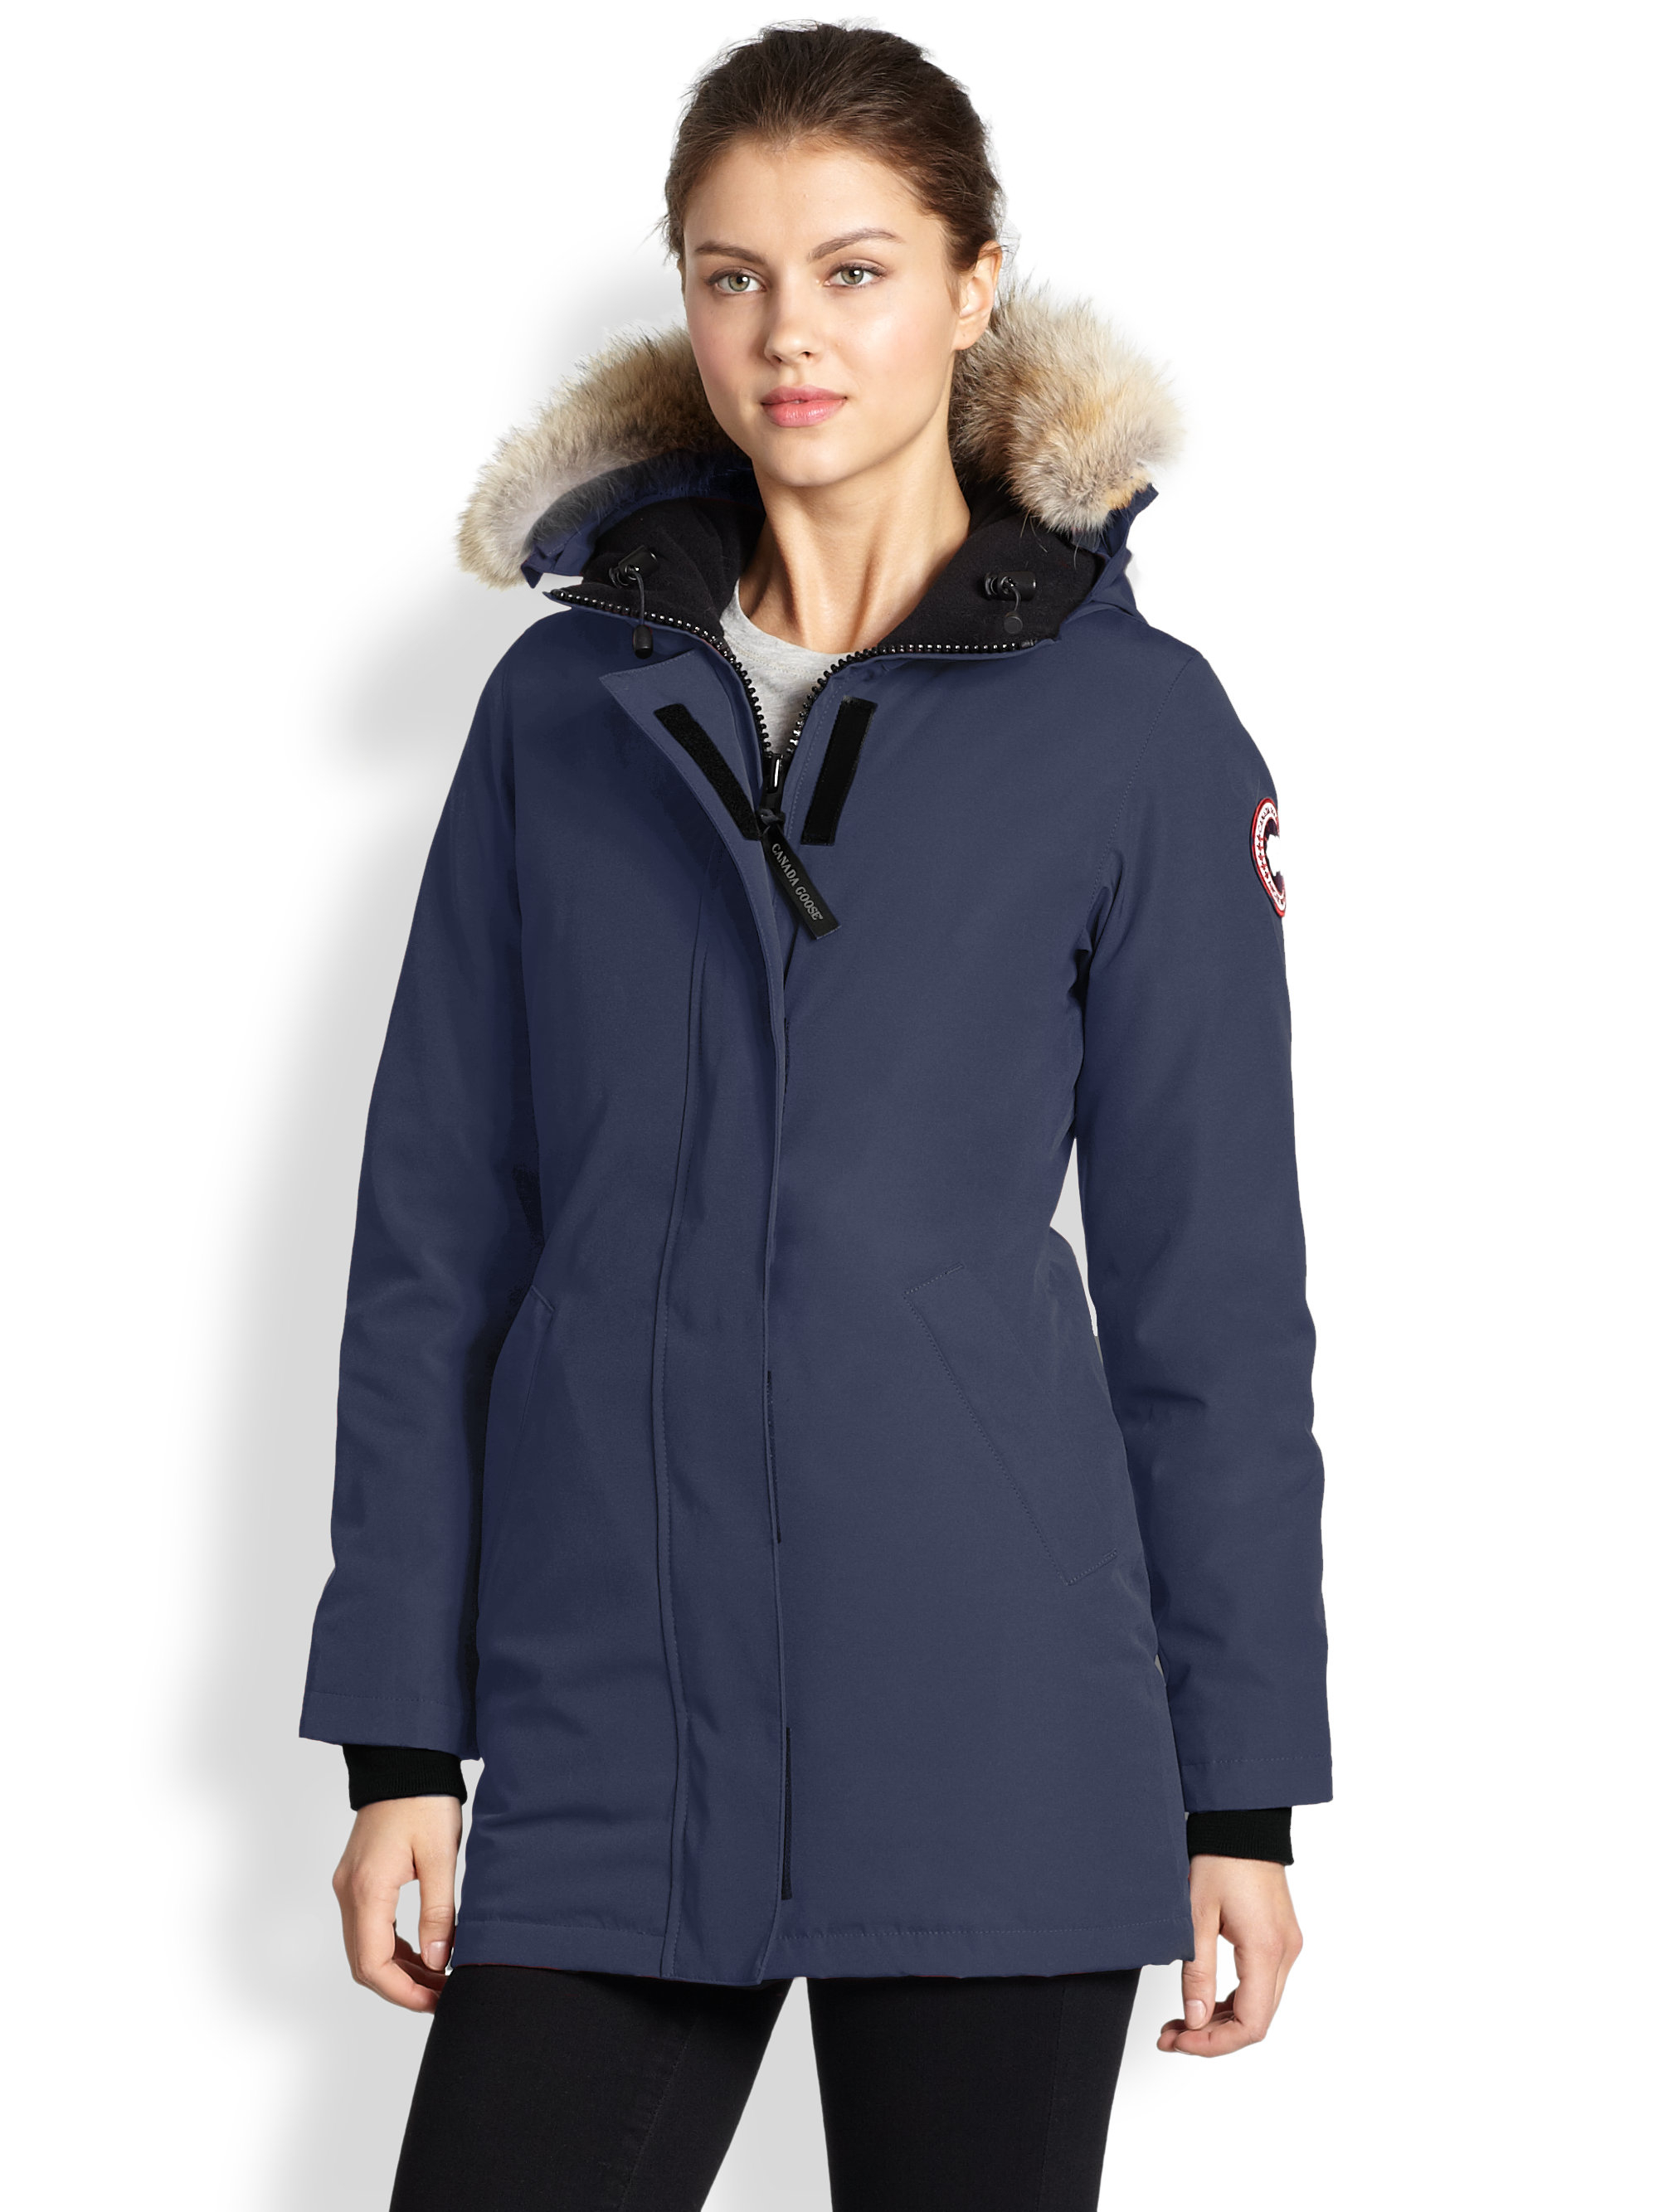 Canada Goose' price new holland